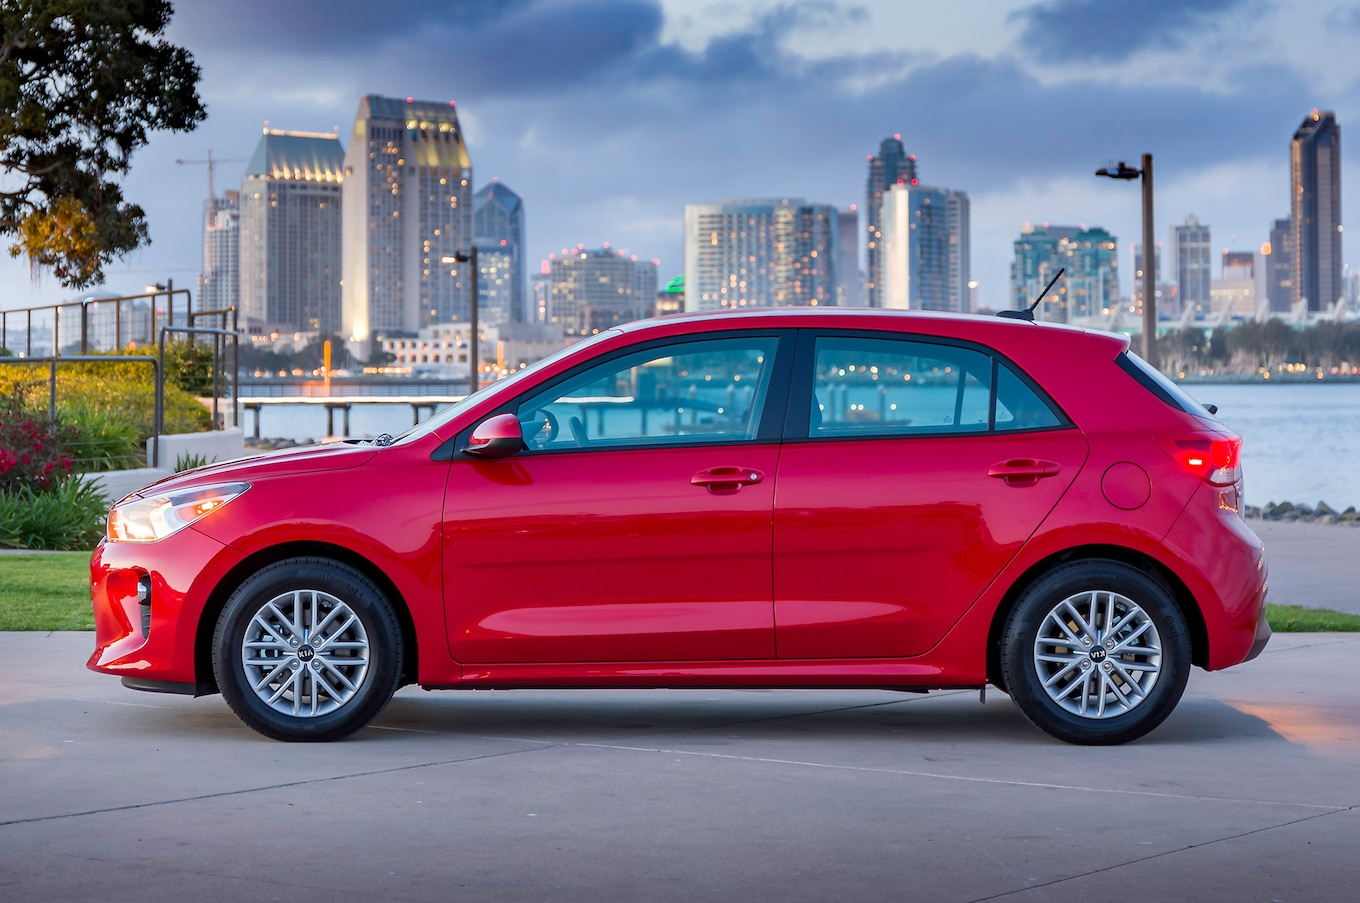 2018 Kia Rio Reviews And Rating  Motor Trend